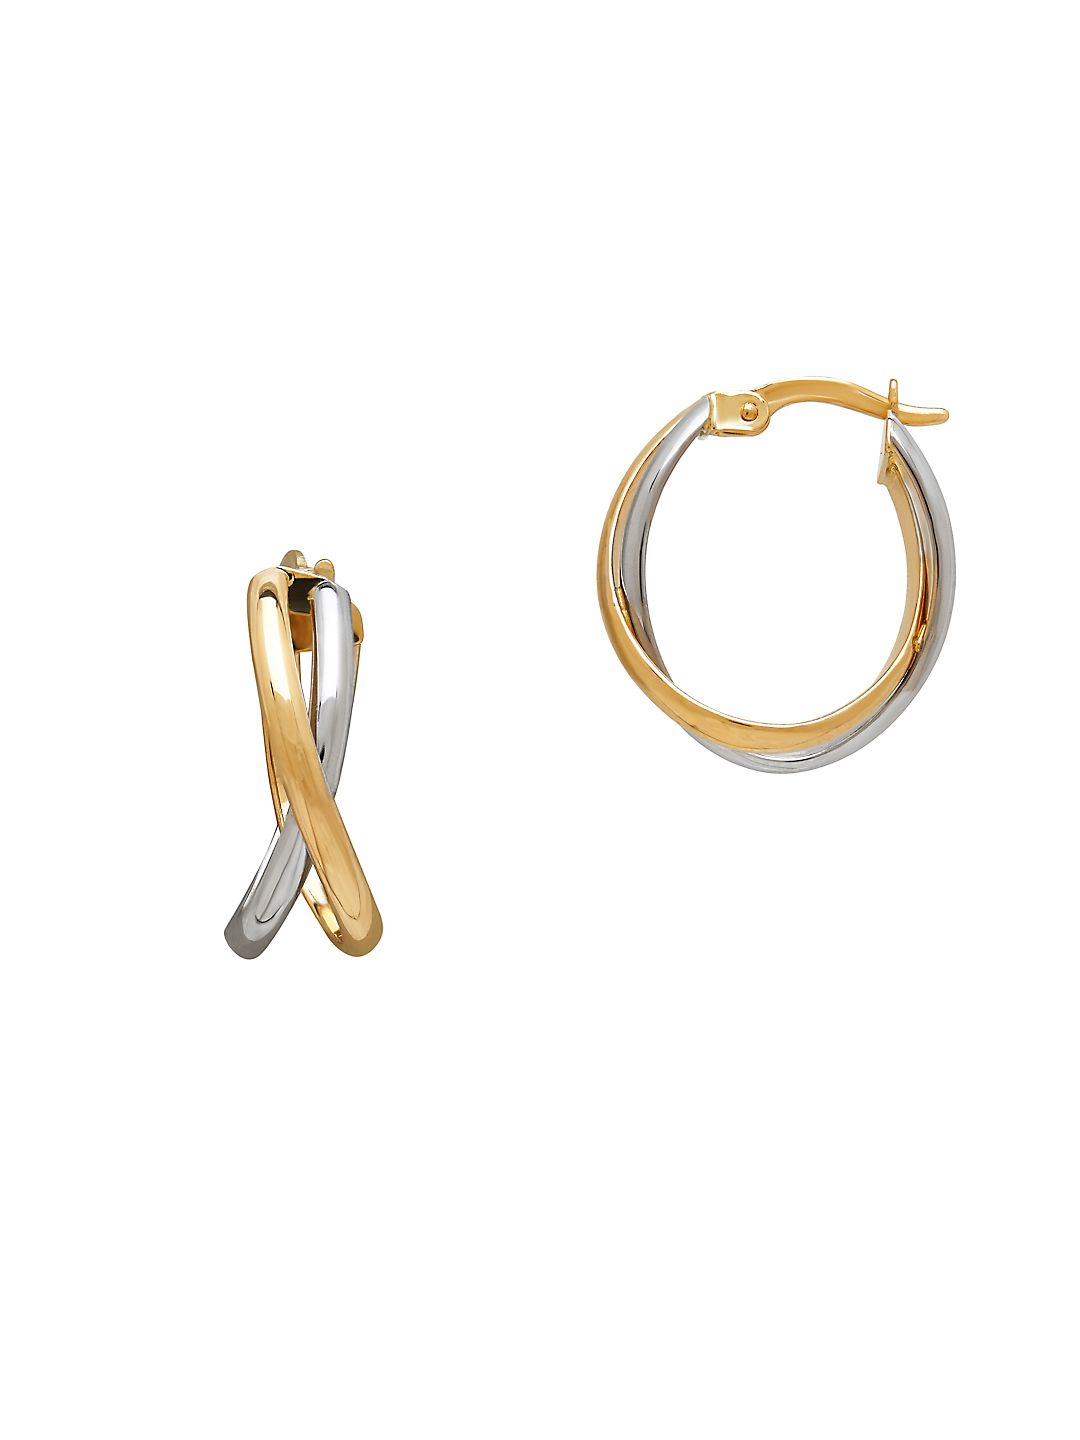 Two Tone 14K Yellow and White Gold Hoop Earrings